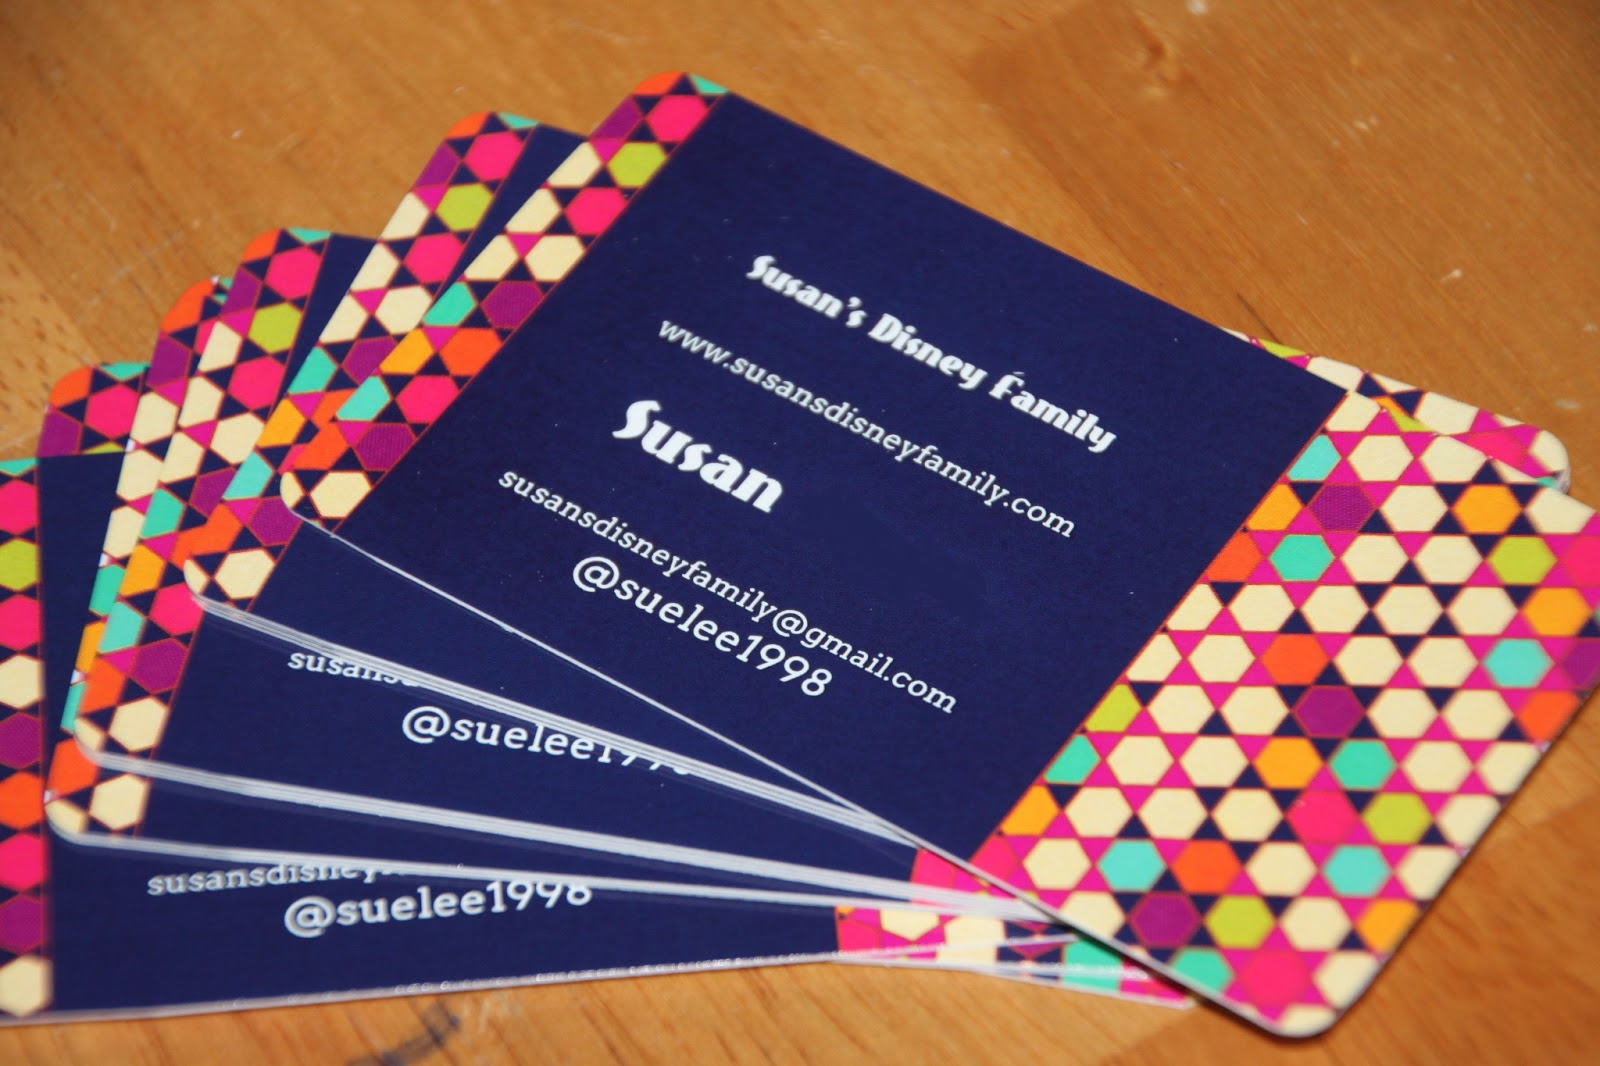 Susans disney family signazon a great place for business cards and the business cards are well made and are on a great thick paper stock they are so well done i love the rounded edges it gives them a more unique look colourmoves